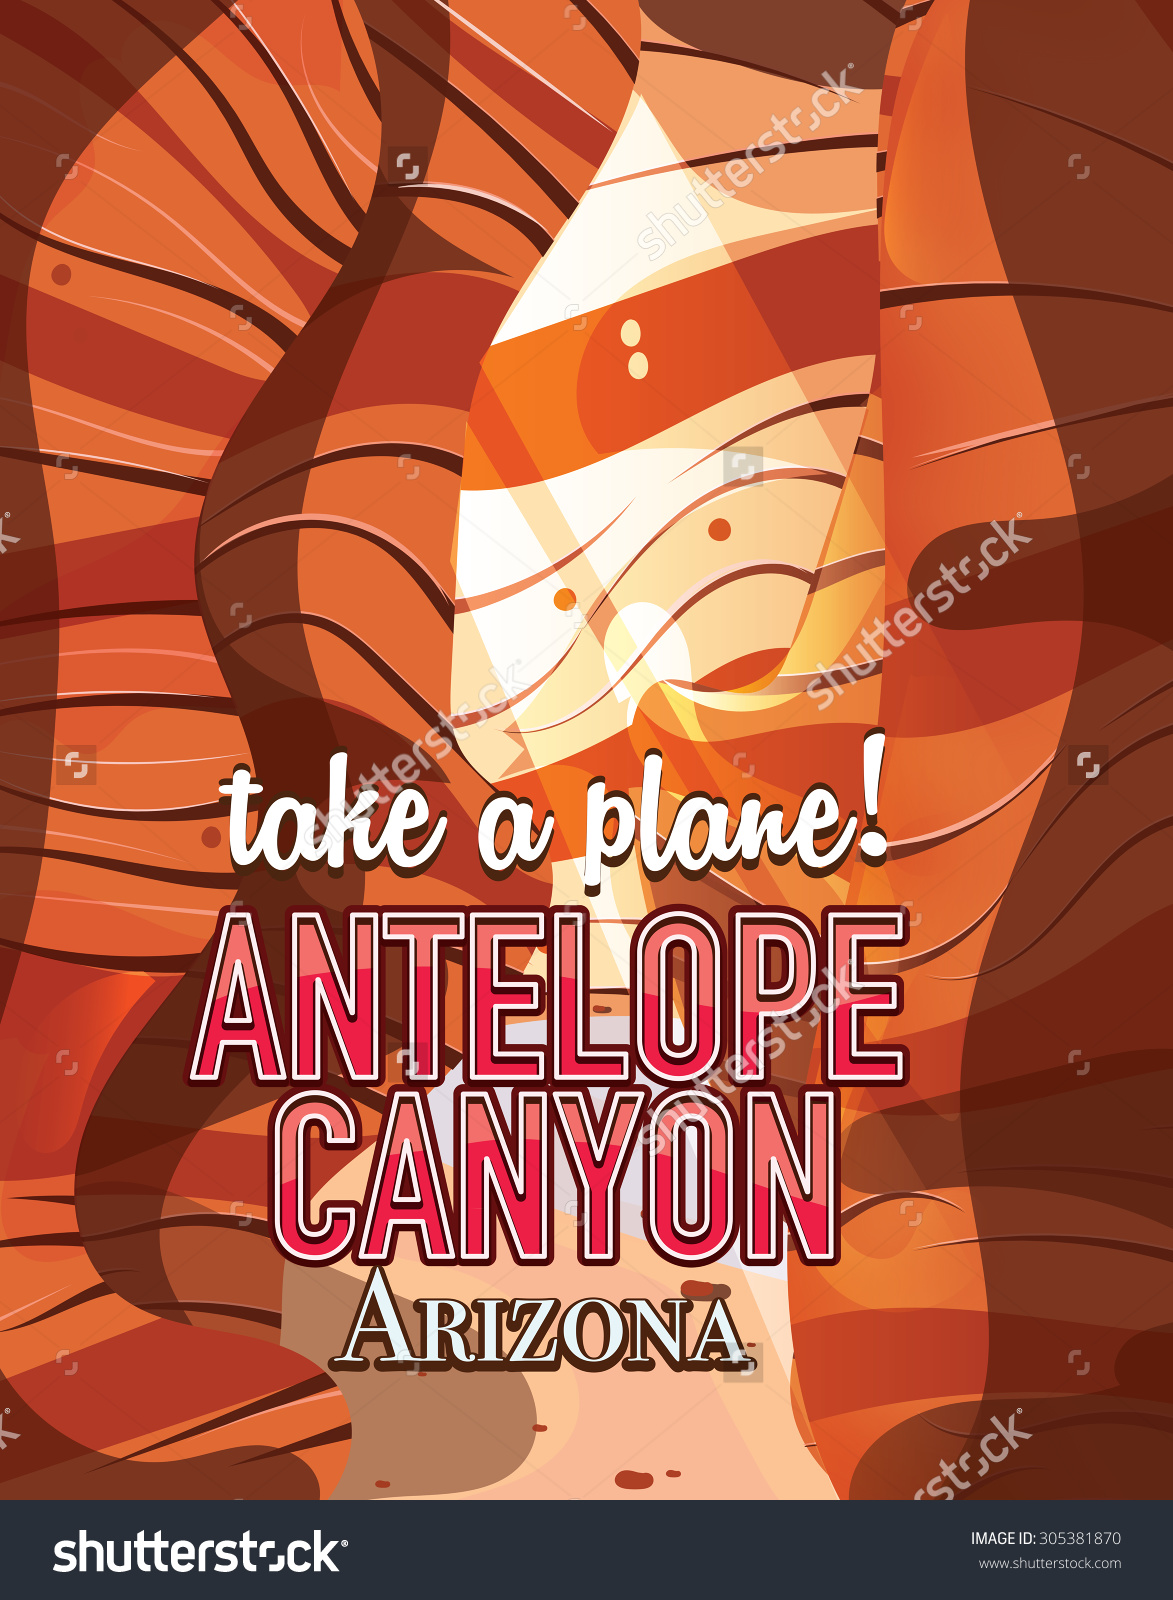 Antelope Canyon Travel Poster Stock Illustration 305381870.